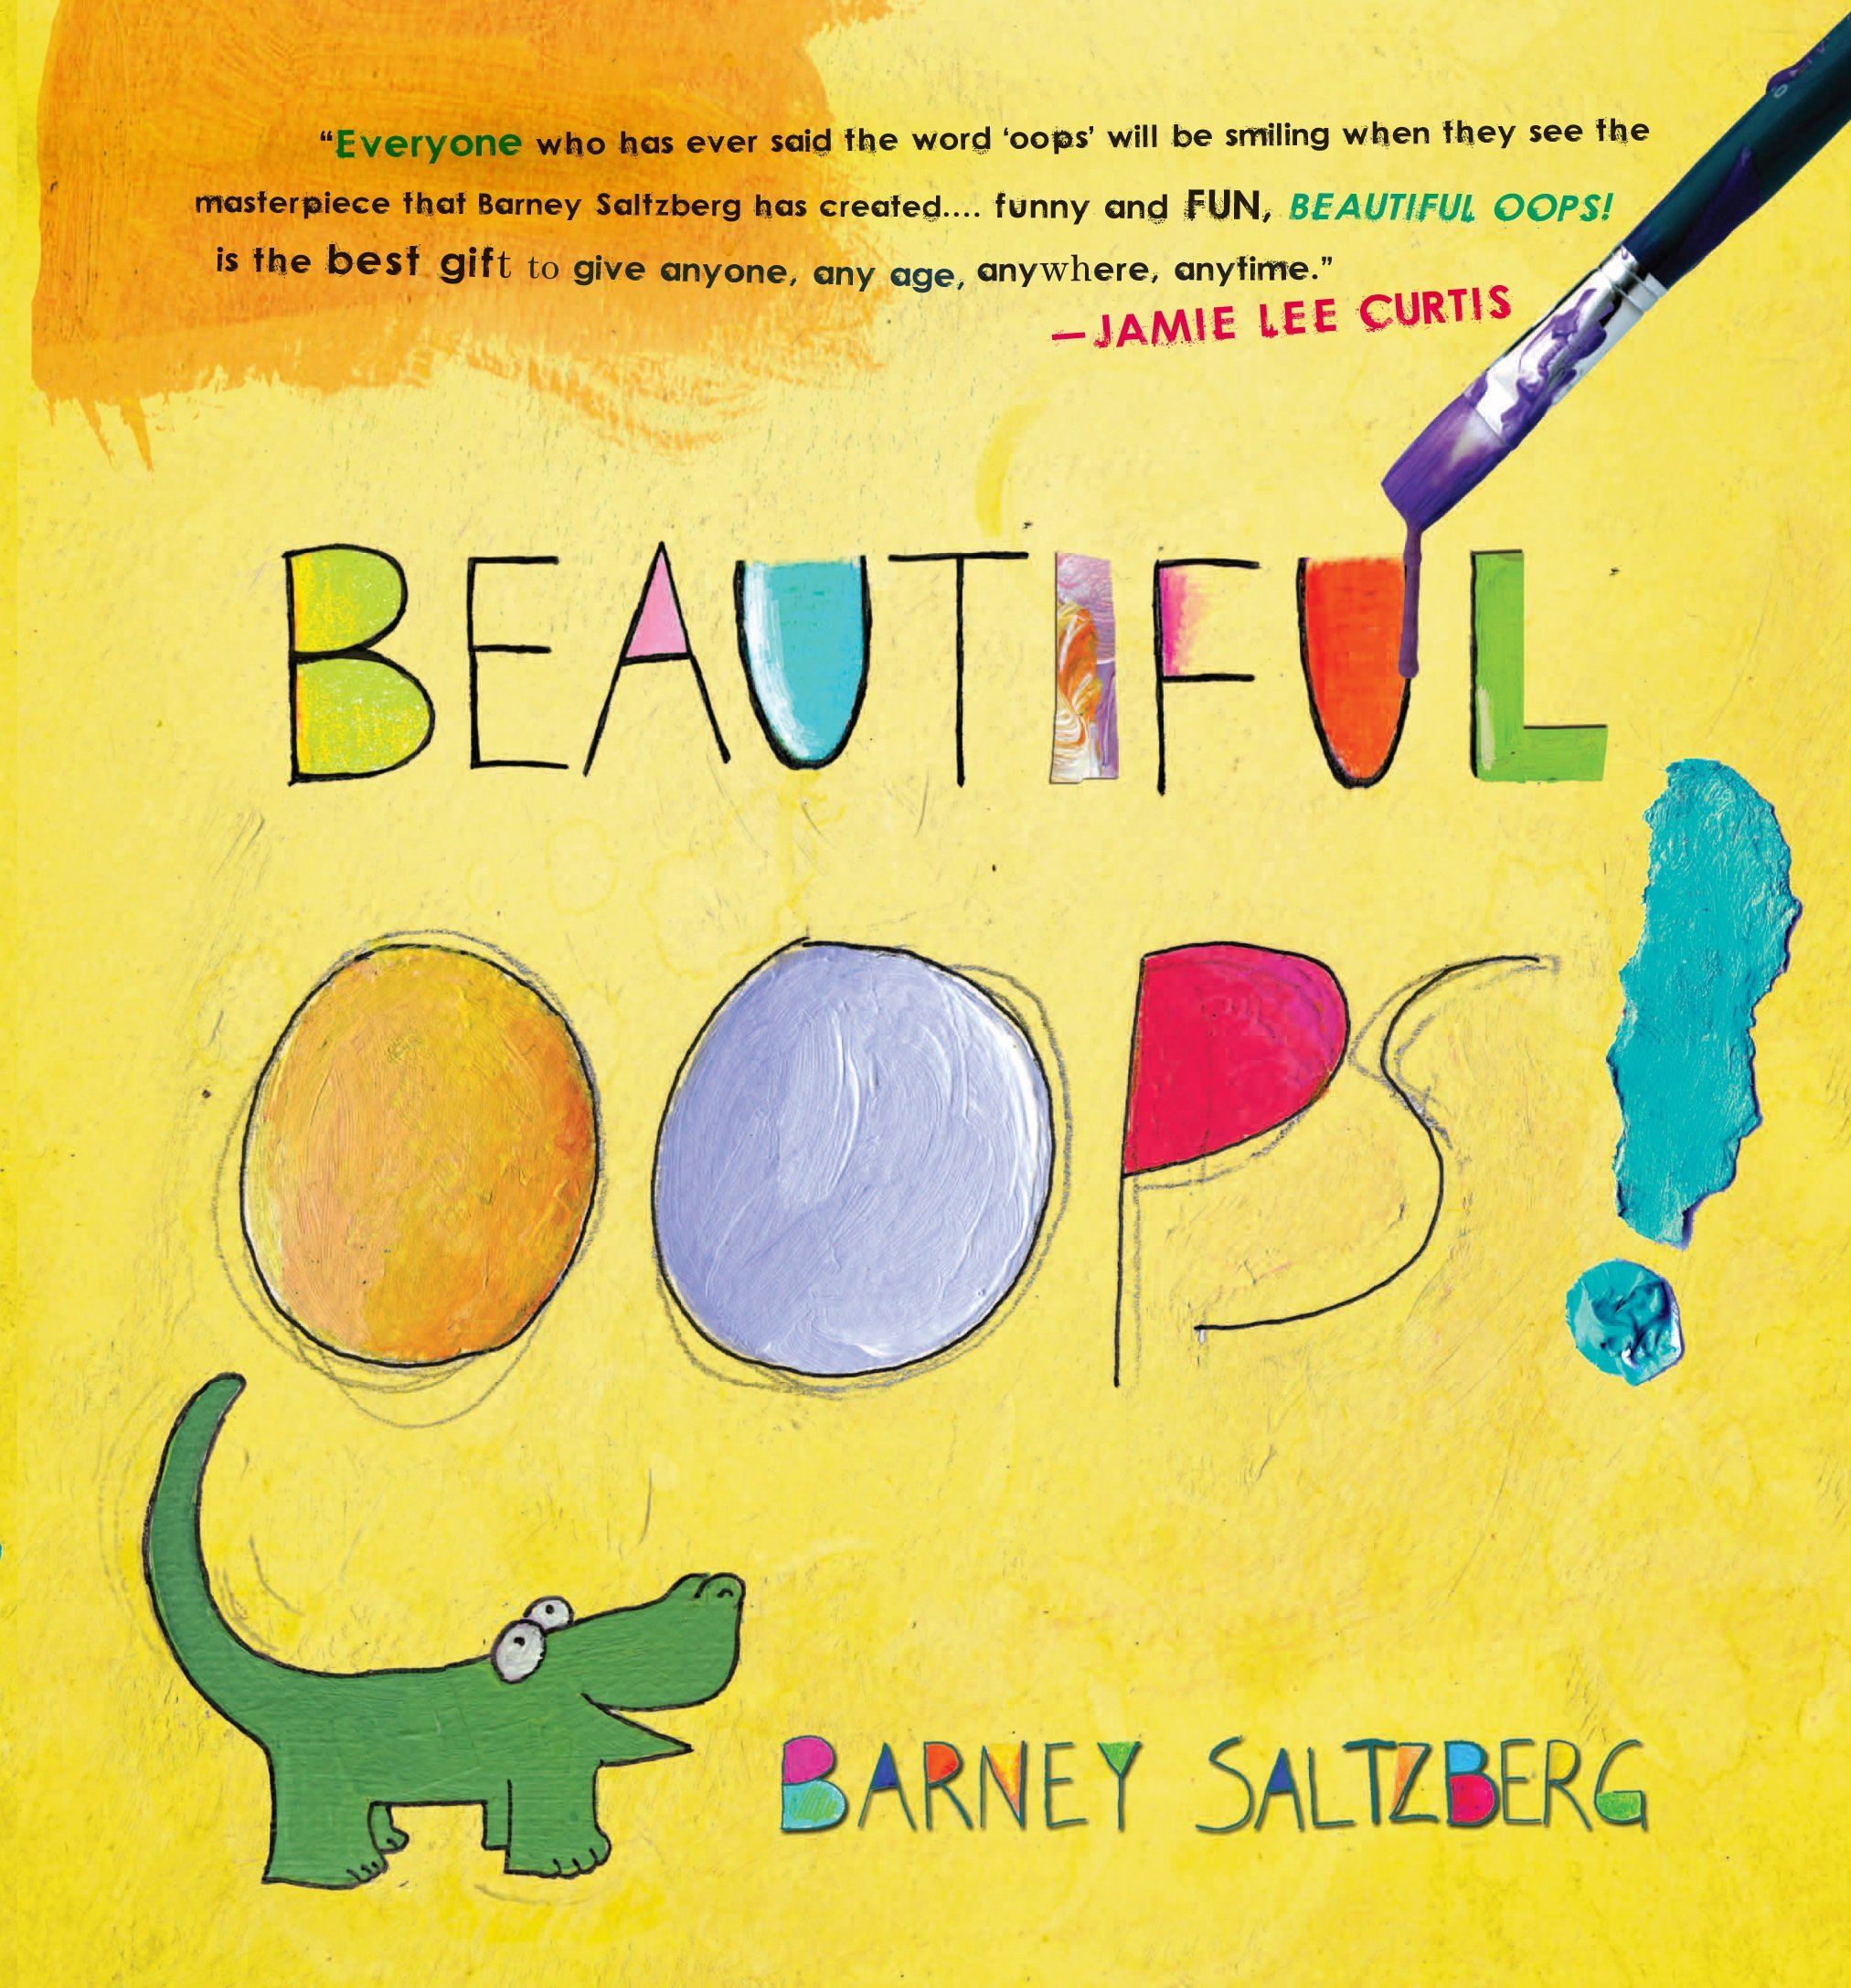 Beautiful Oops! book cover